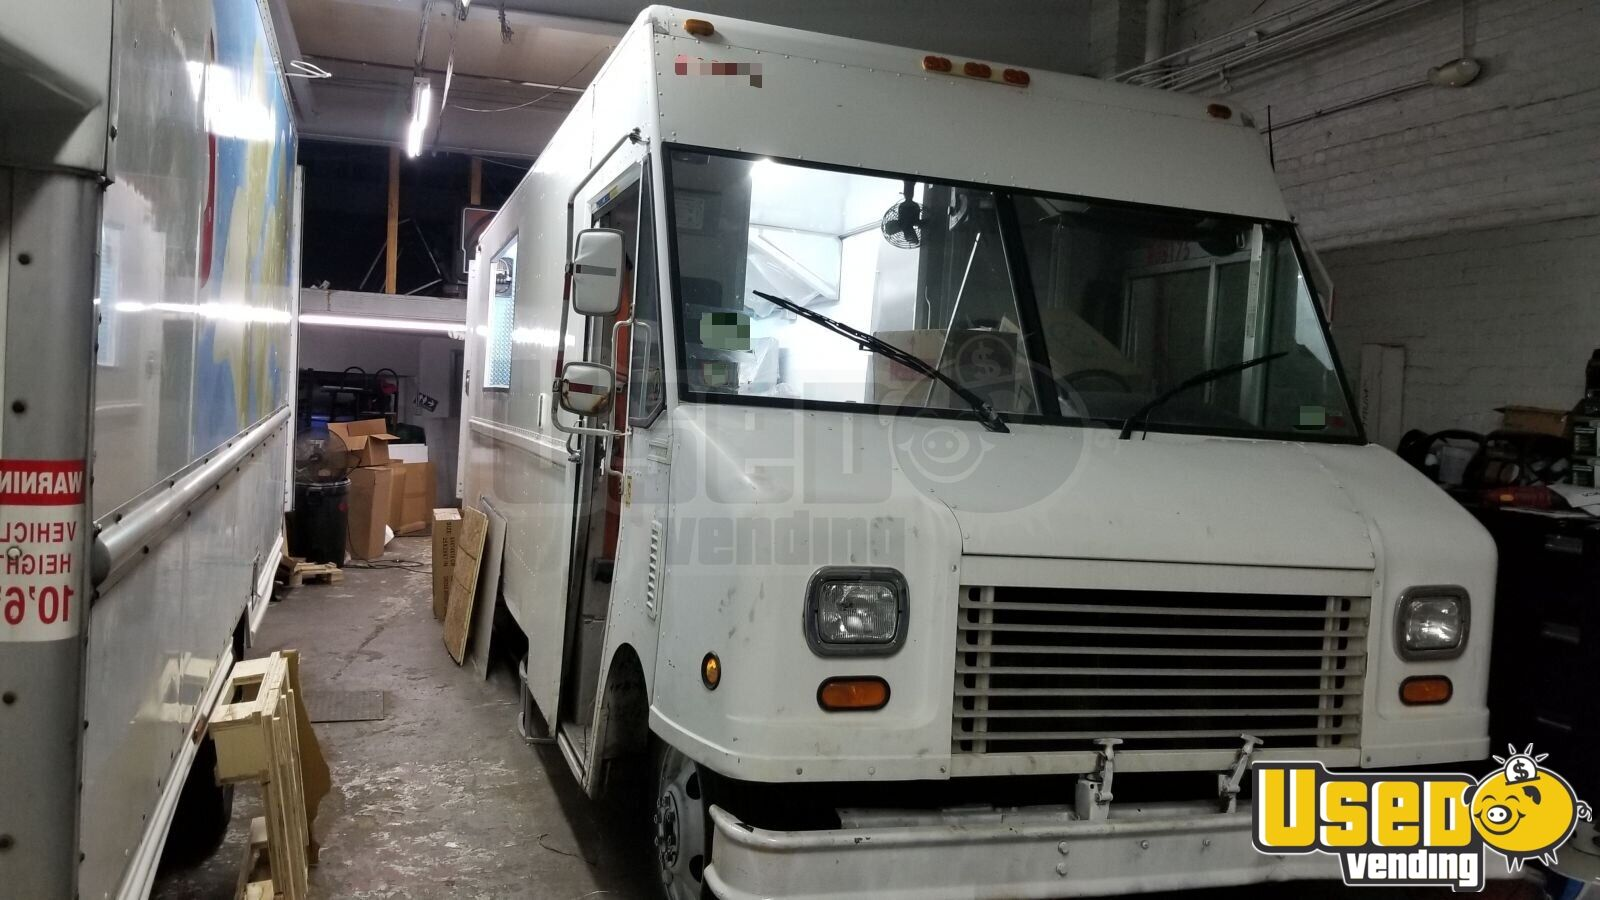 2006 Chevrolet 18 Food Truck Brand New 2020 Commercial Mobile Kitchen For Sale In New Jersey